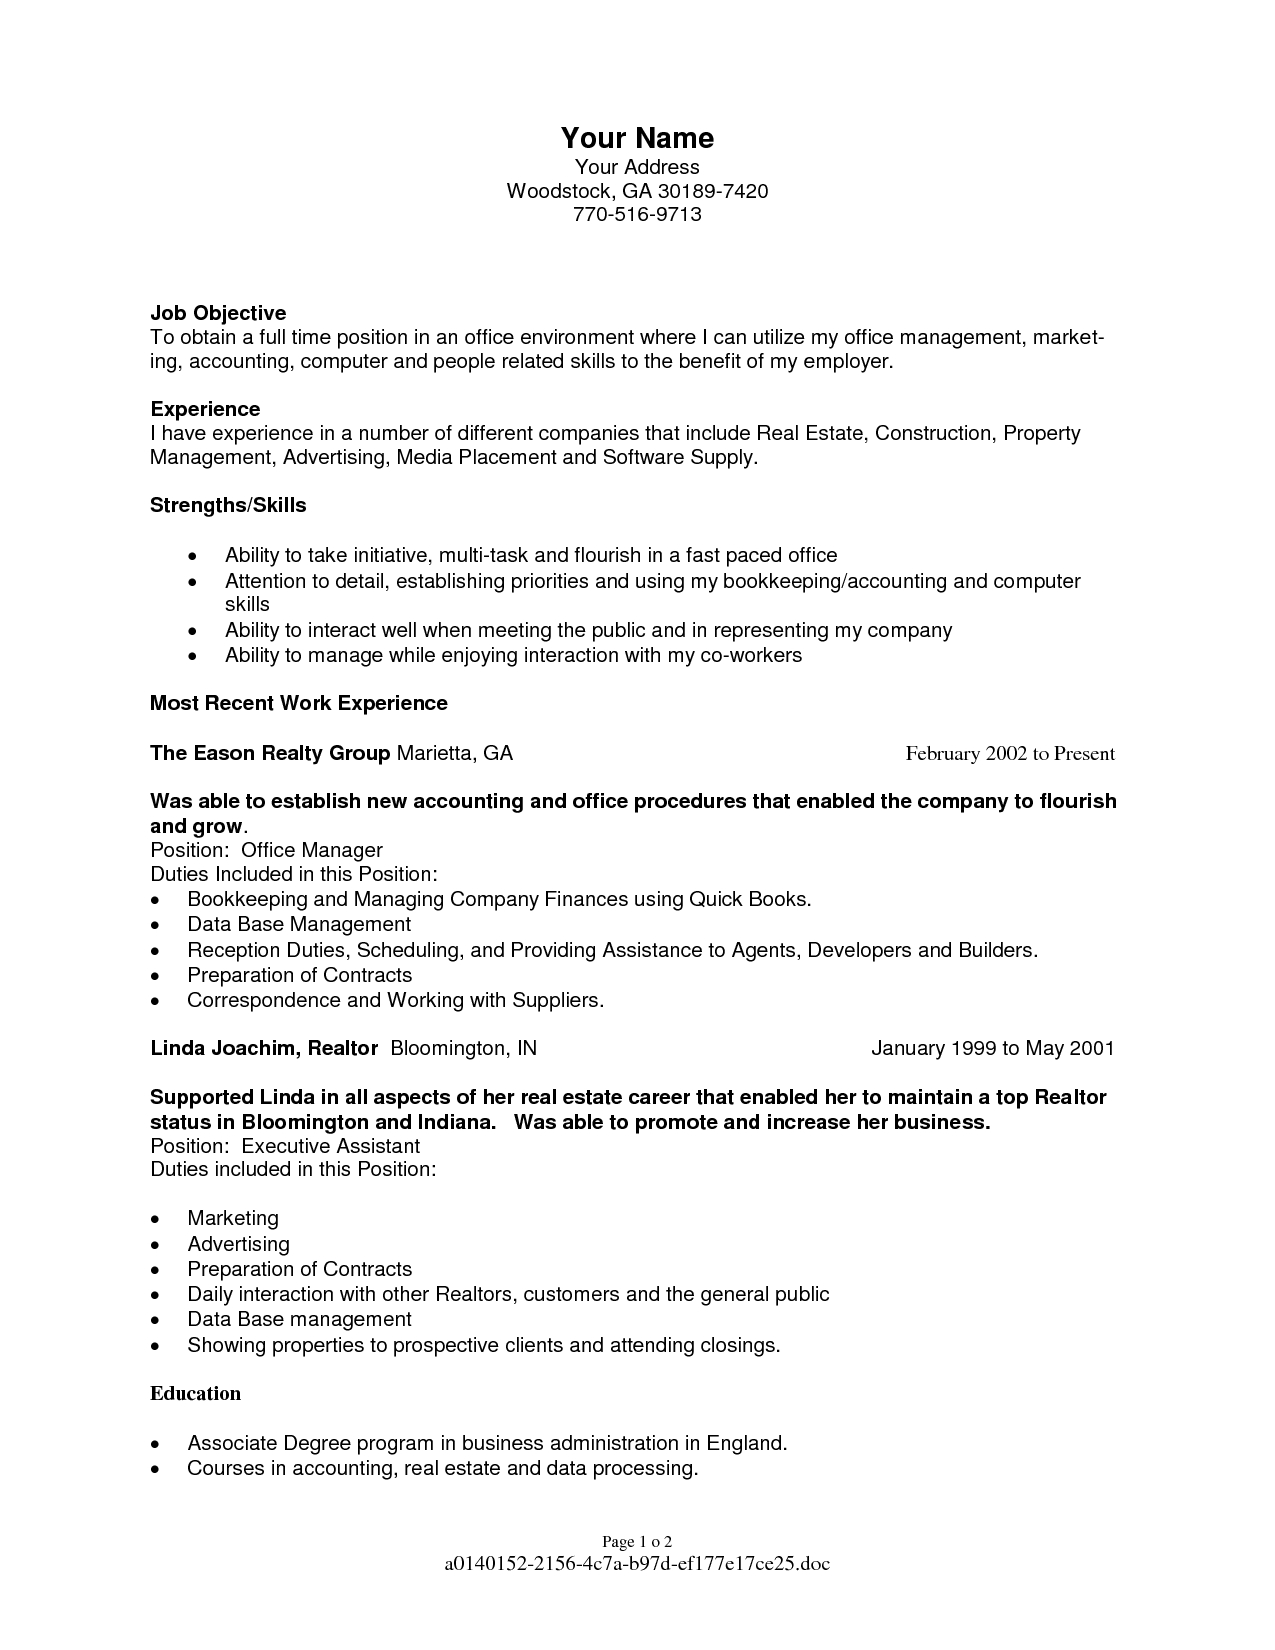 Real Estate Introduction Letter Template - Real Estate Agent Resume Example Roddyschrock